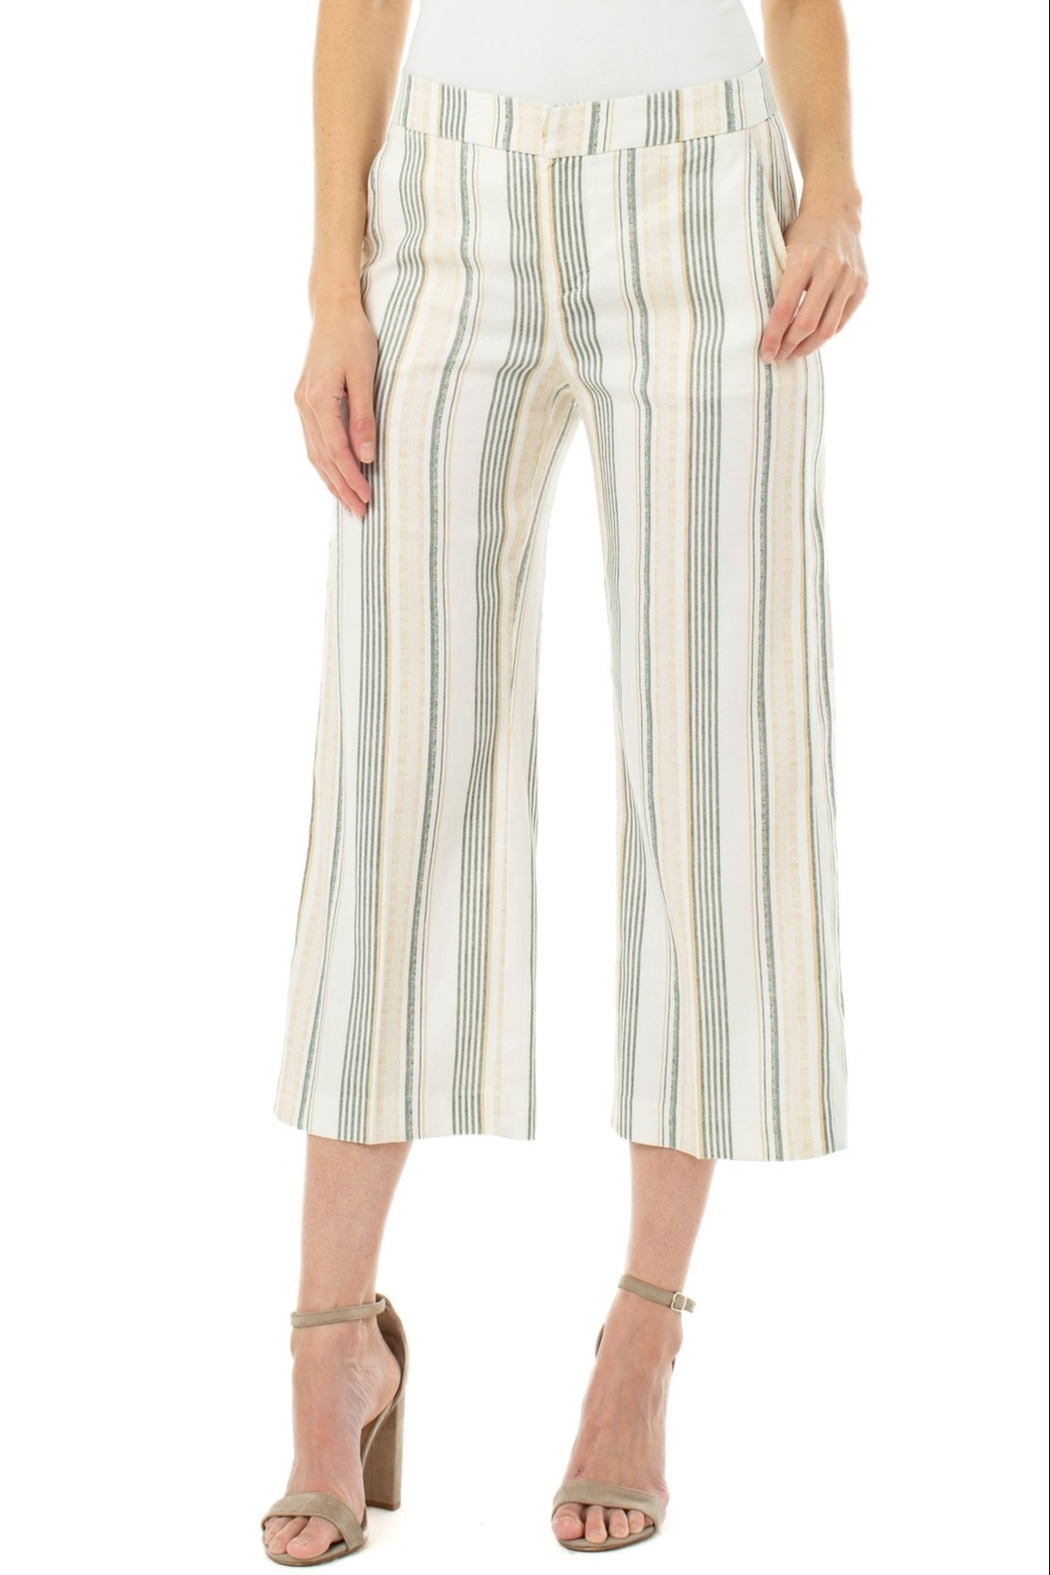 Liverpool Stretch Linen Cropped Trouser - Main Image